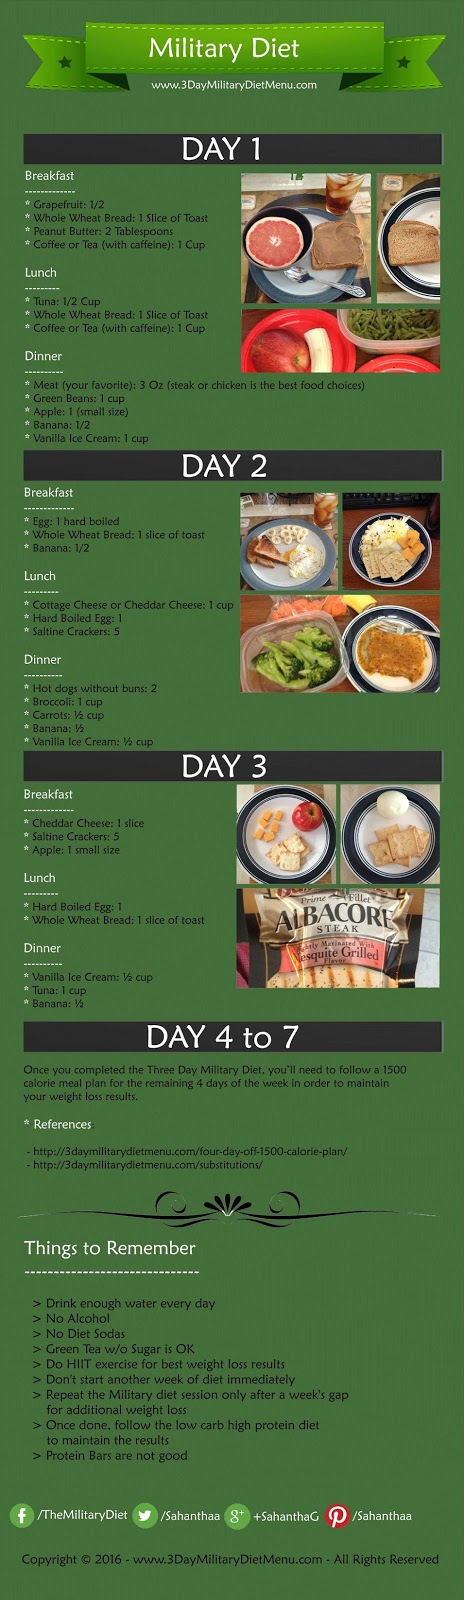 military diet plan infographic